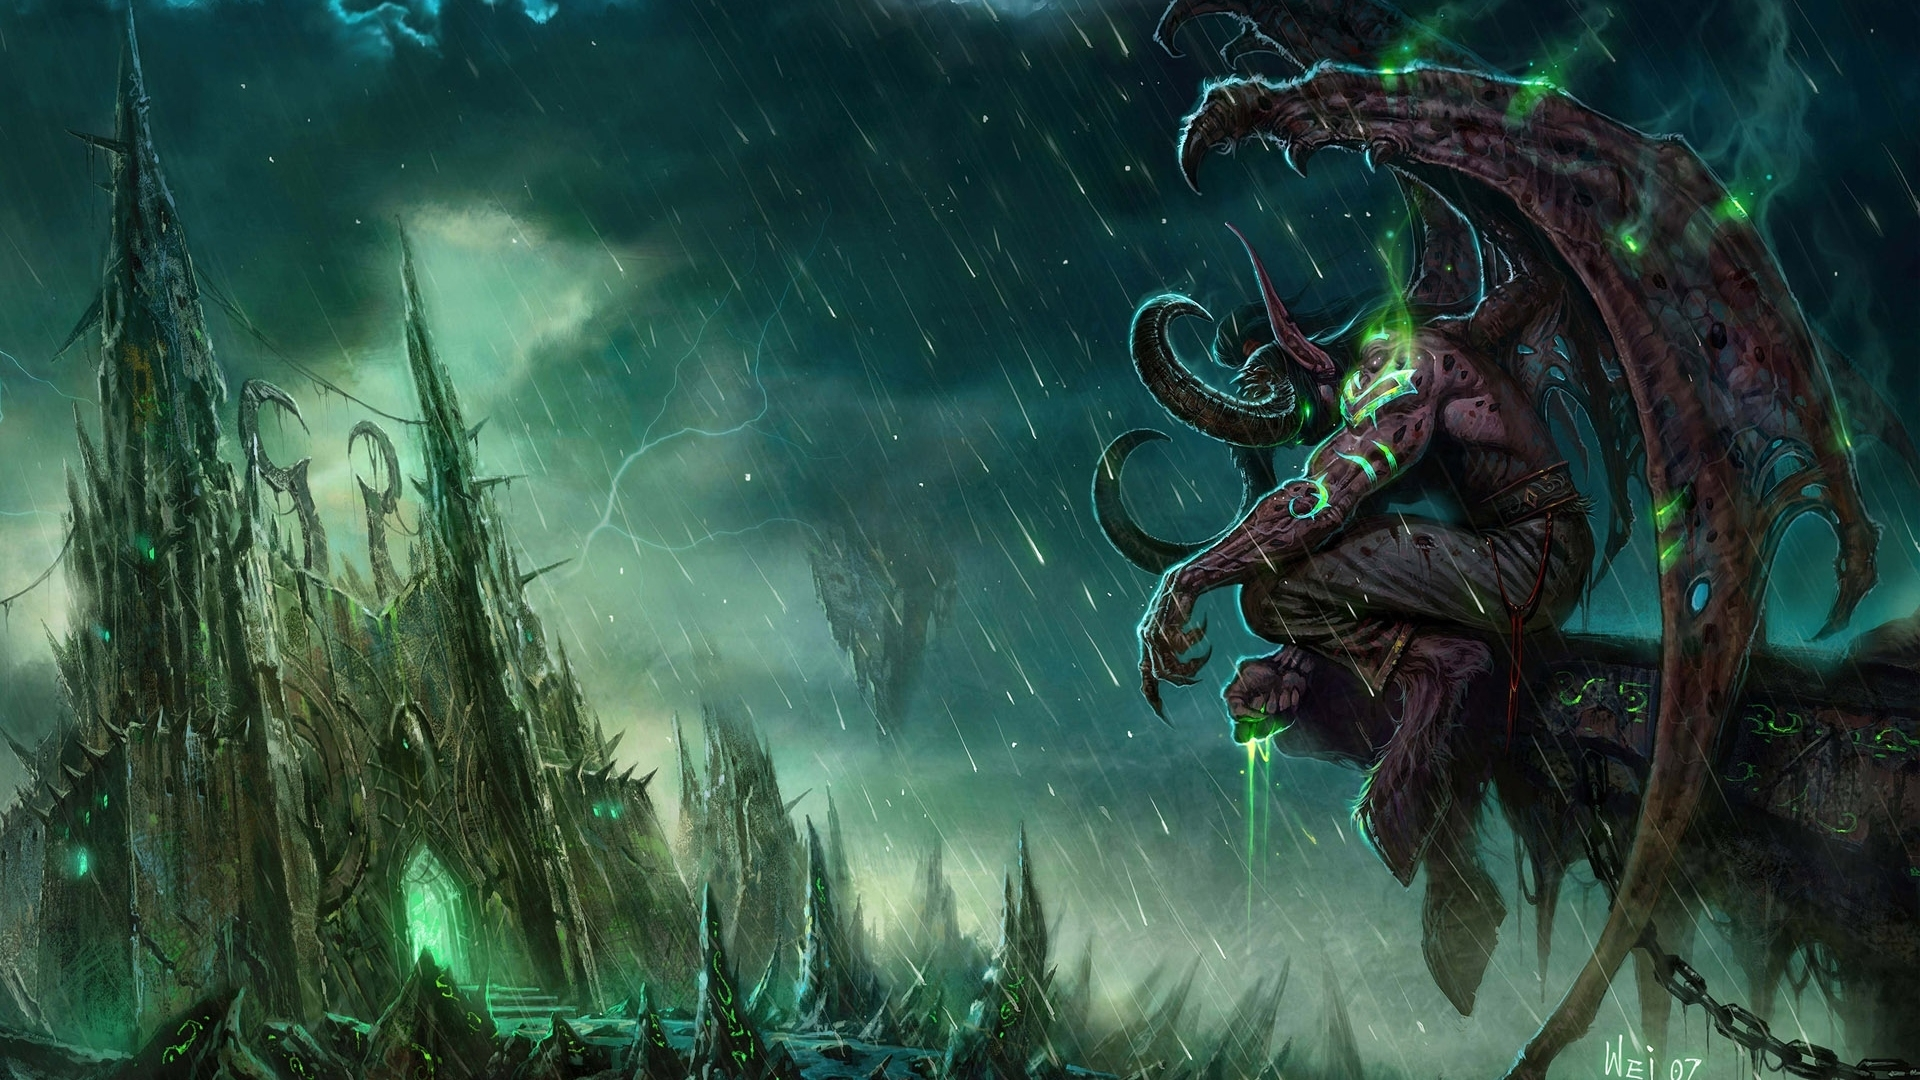 world of warcraft wallpapers hd 1080p wallpaper 101465 | wallpapers